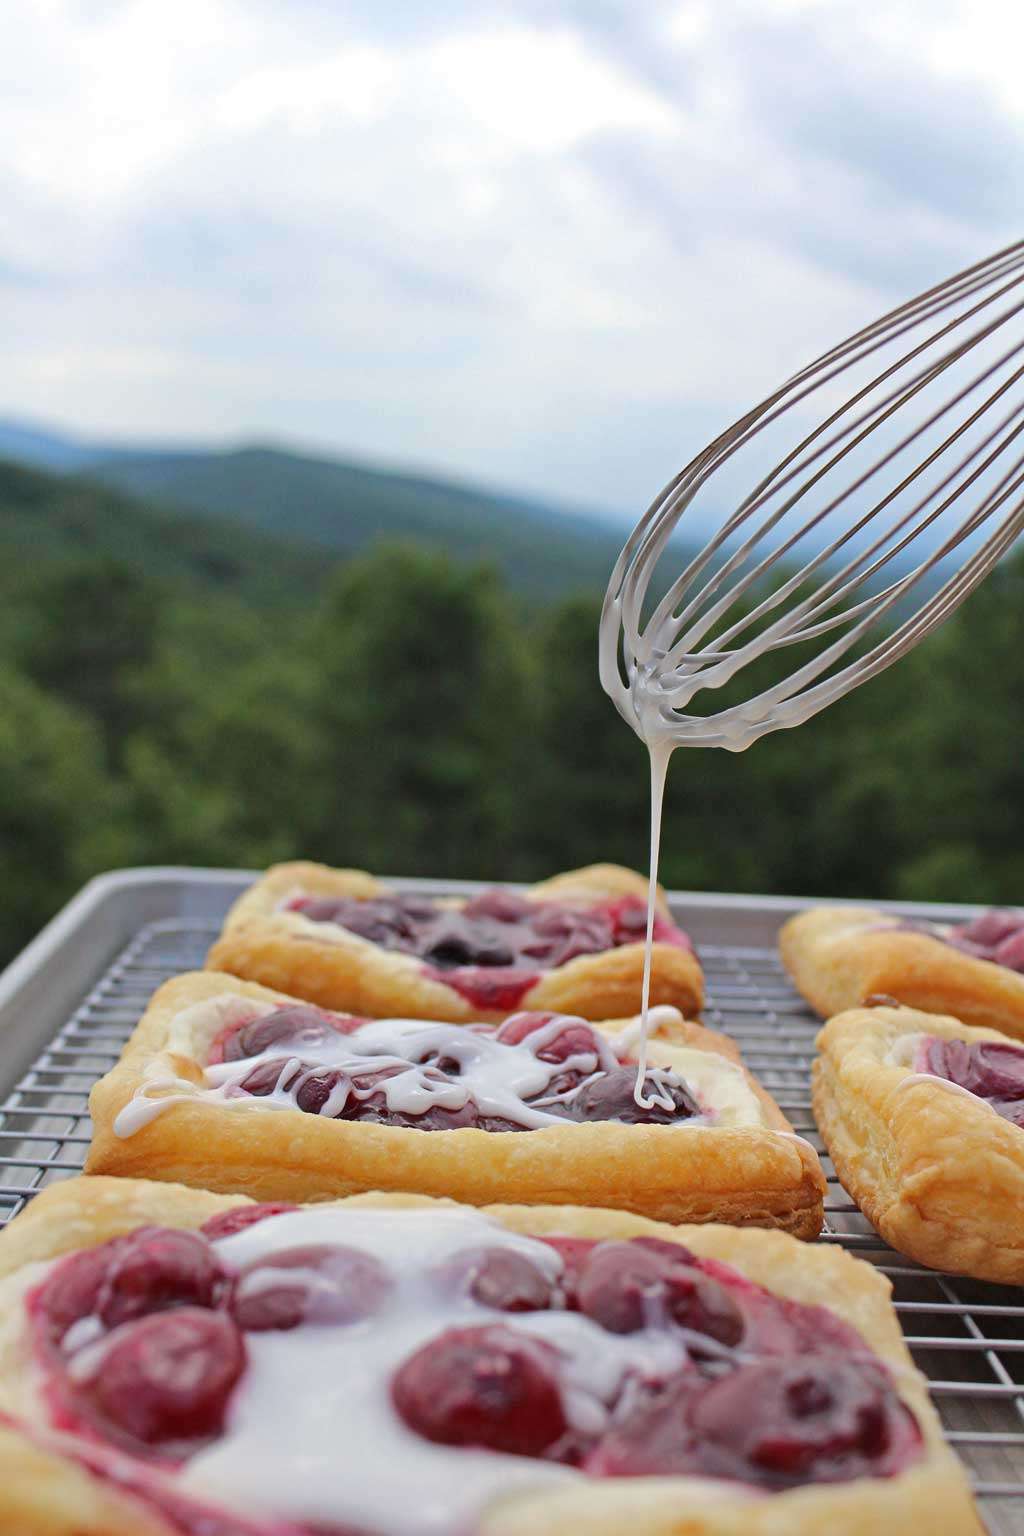 Yum! Enjoy this light, flaky, and easy cherry cream cheese danish with vanilla glaze in the comfort of your home, for breakfast any day of the week.